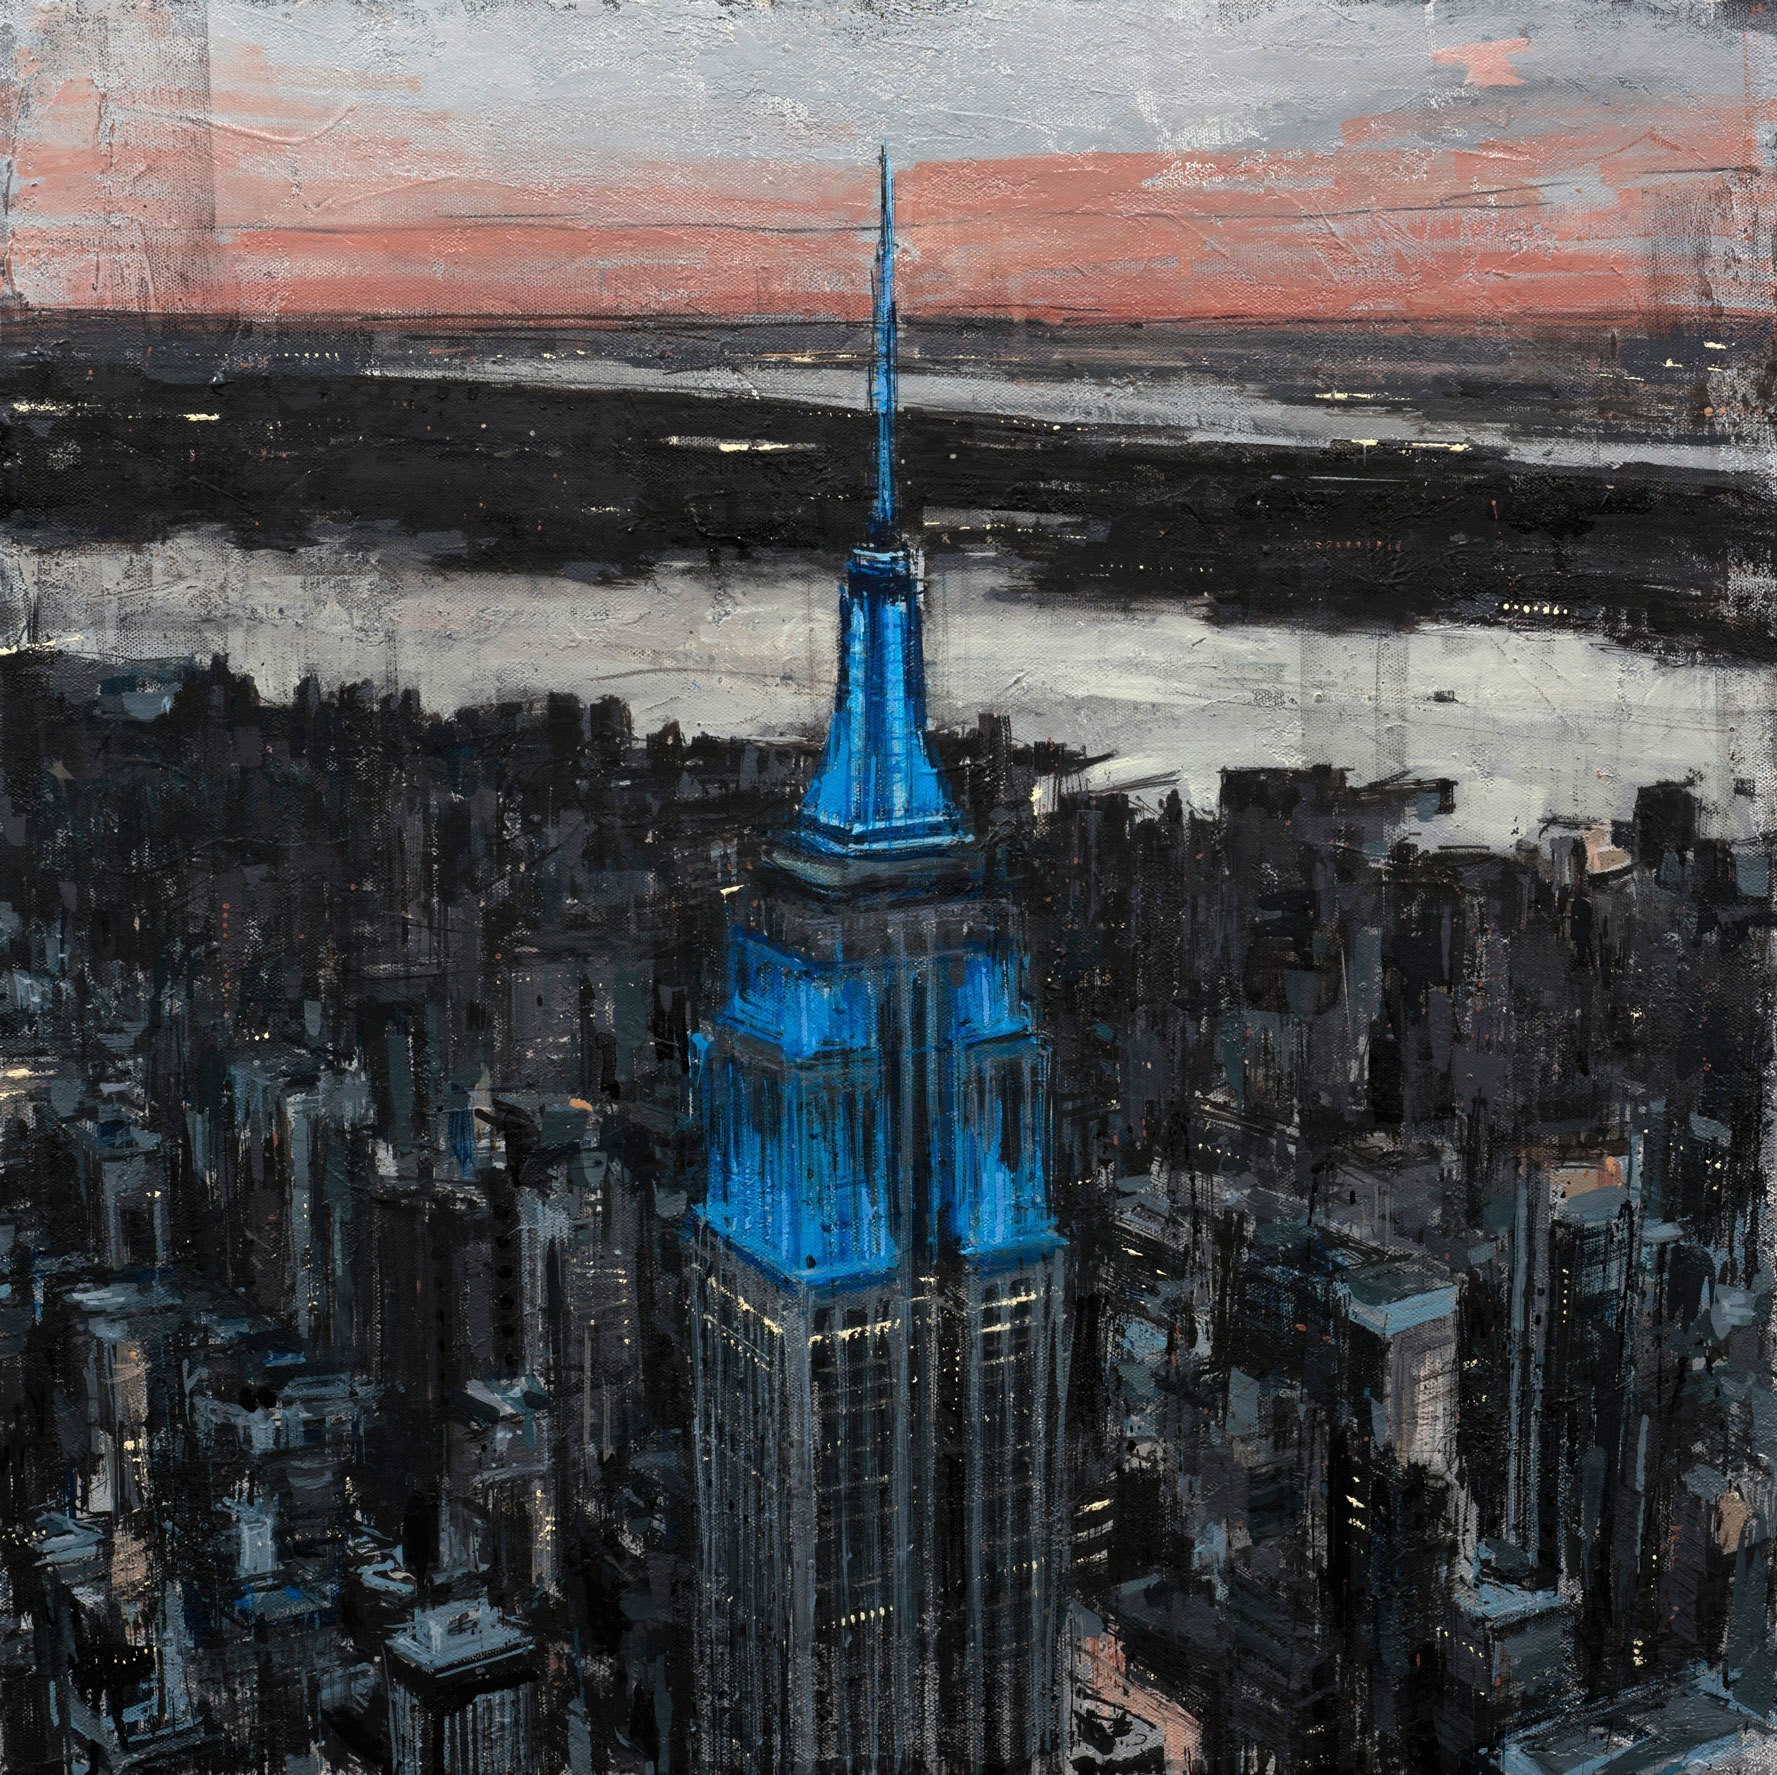 Melty Oil Paintings Capture the Dramatic Beauty of New York City